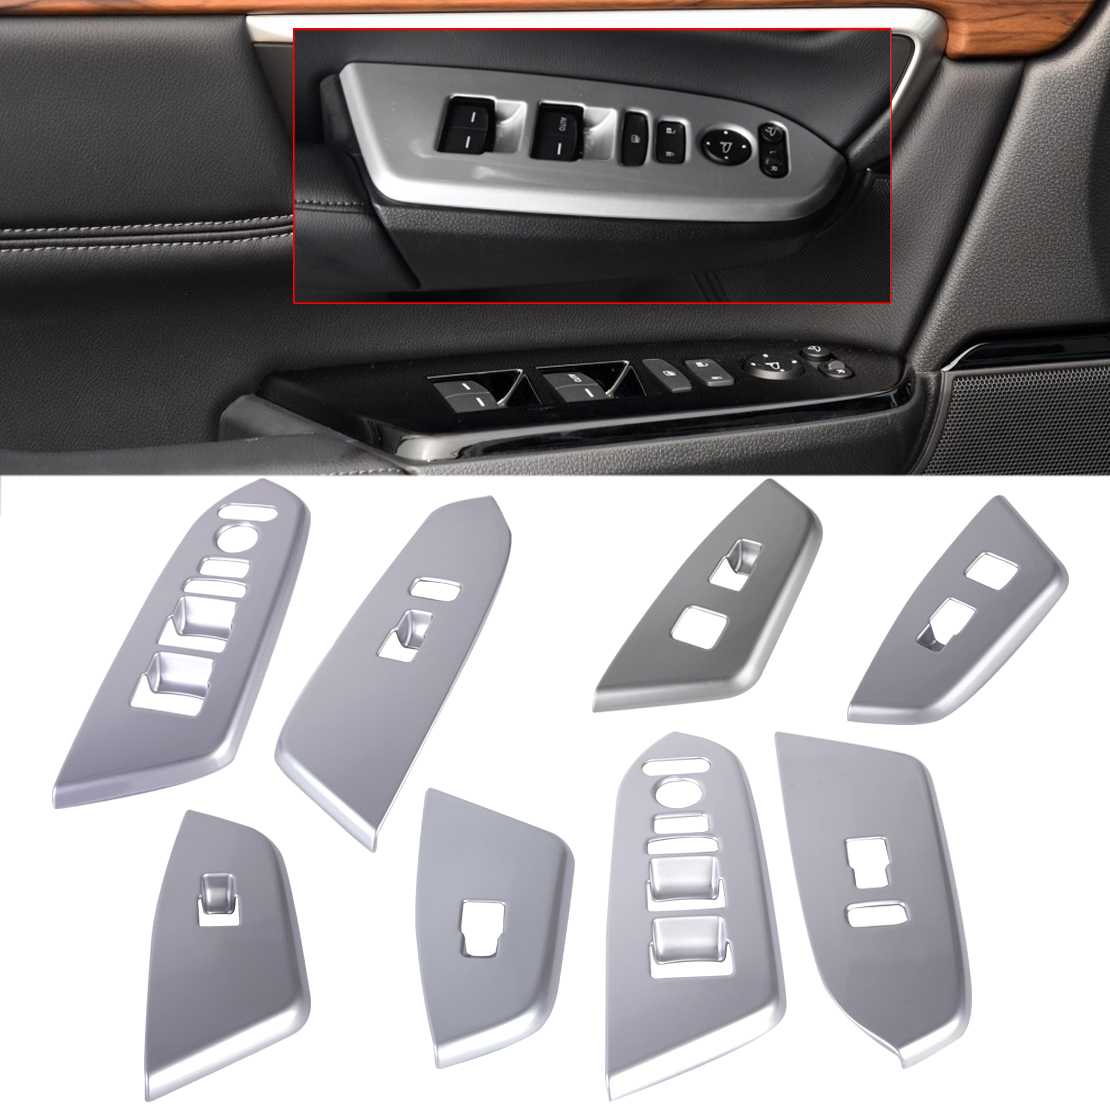 DWCX 4Pcs Car Styling Decoration ABS Matte Chrome Plated Interior Window Switch Trim Molding Cover fit for Honda CRV 2017